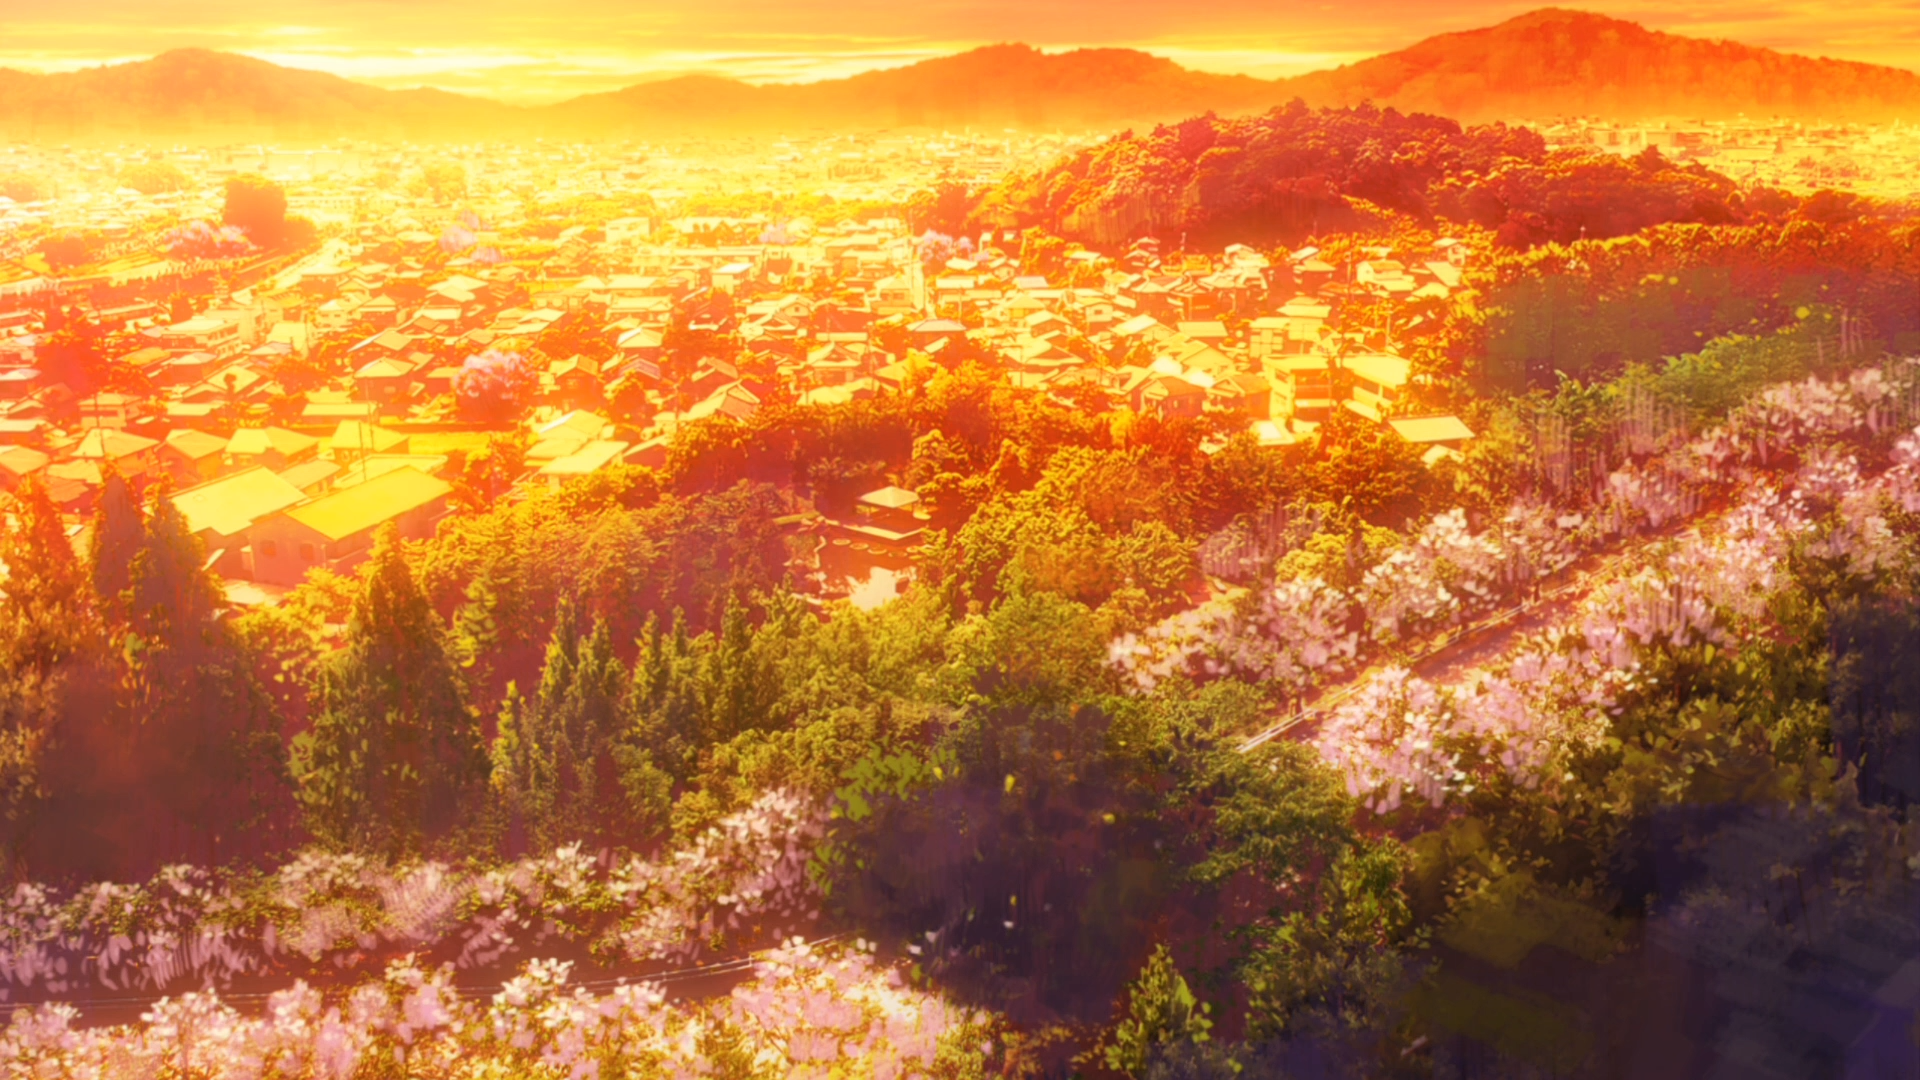 Beautiful Anime Scenery Wallpaper Anime Scenery Scenery Wallpaper Anime Scenery Wallpaper